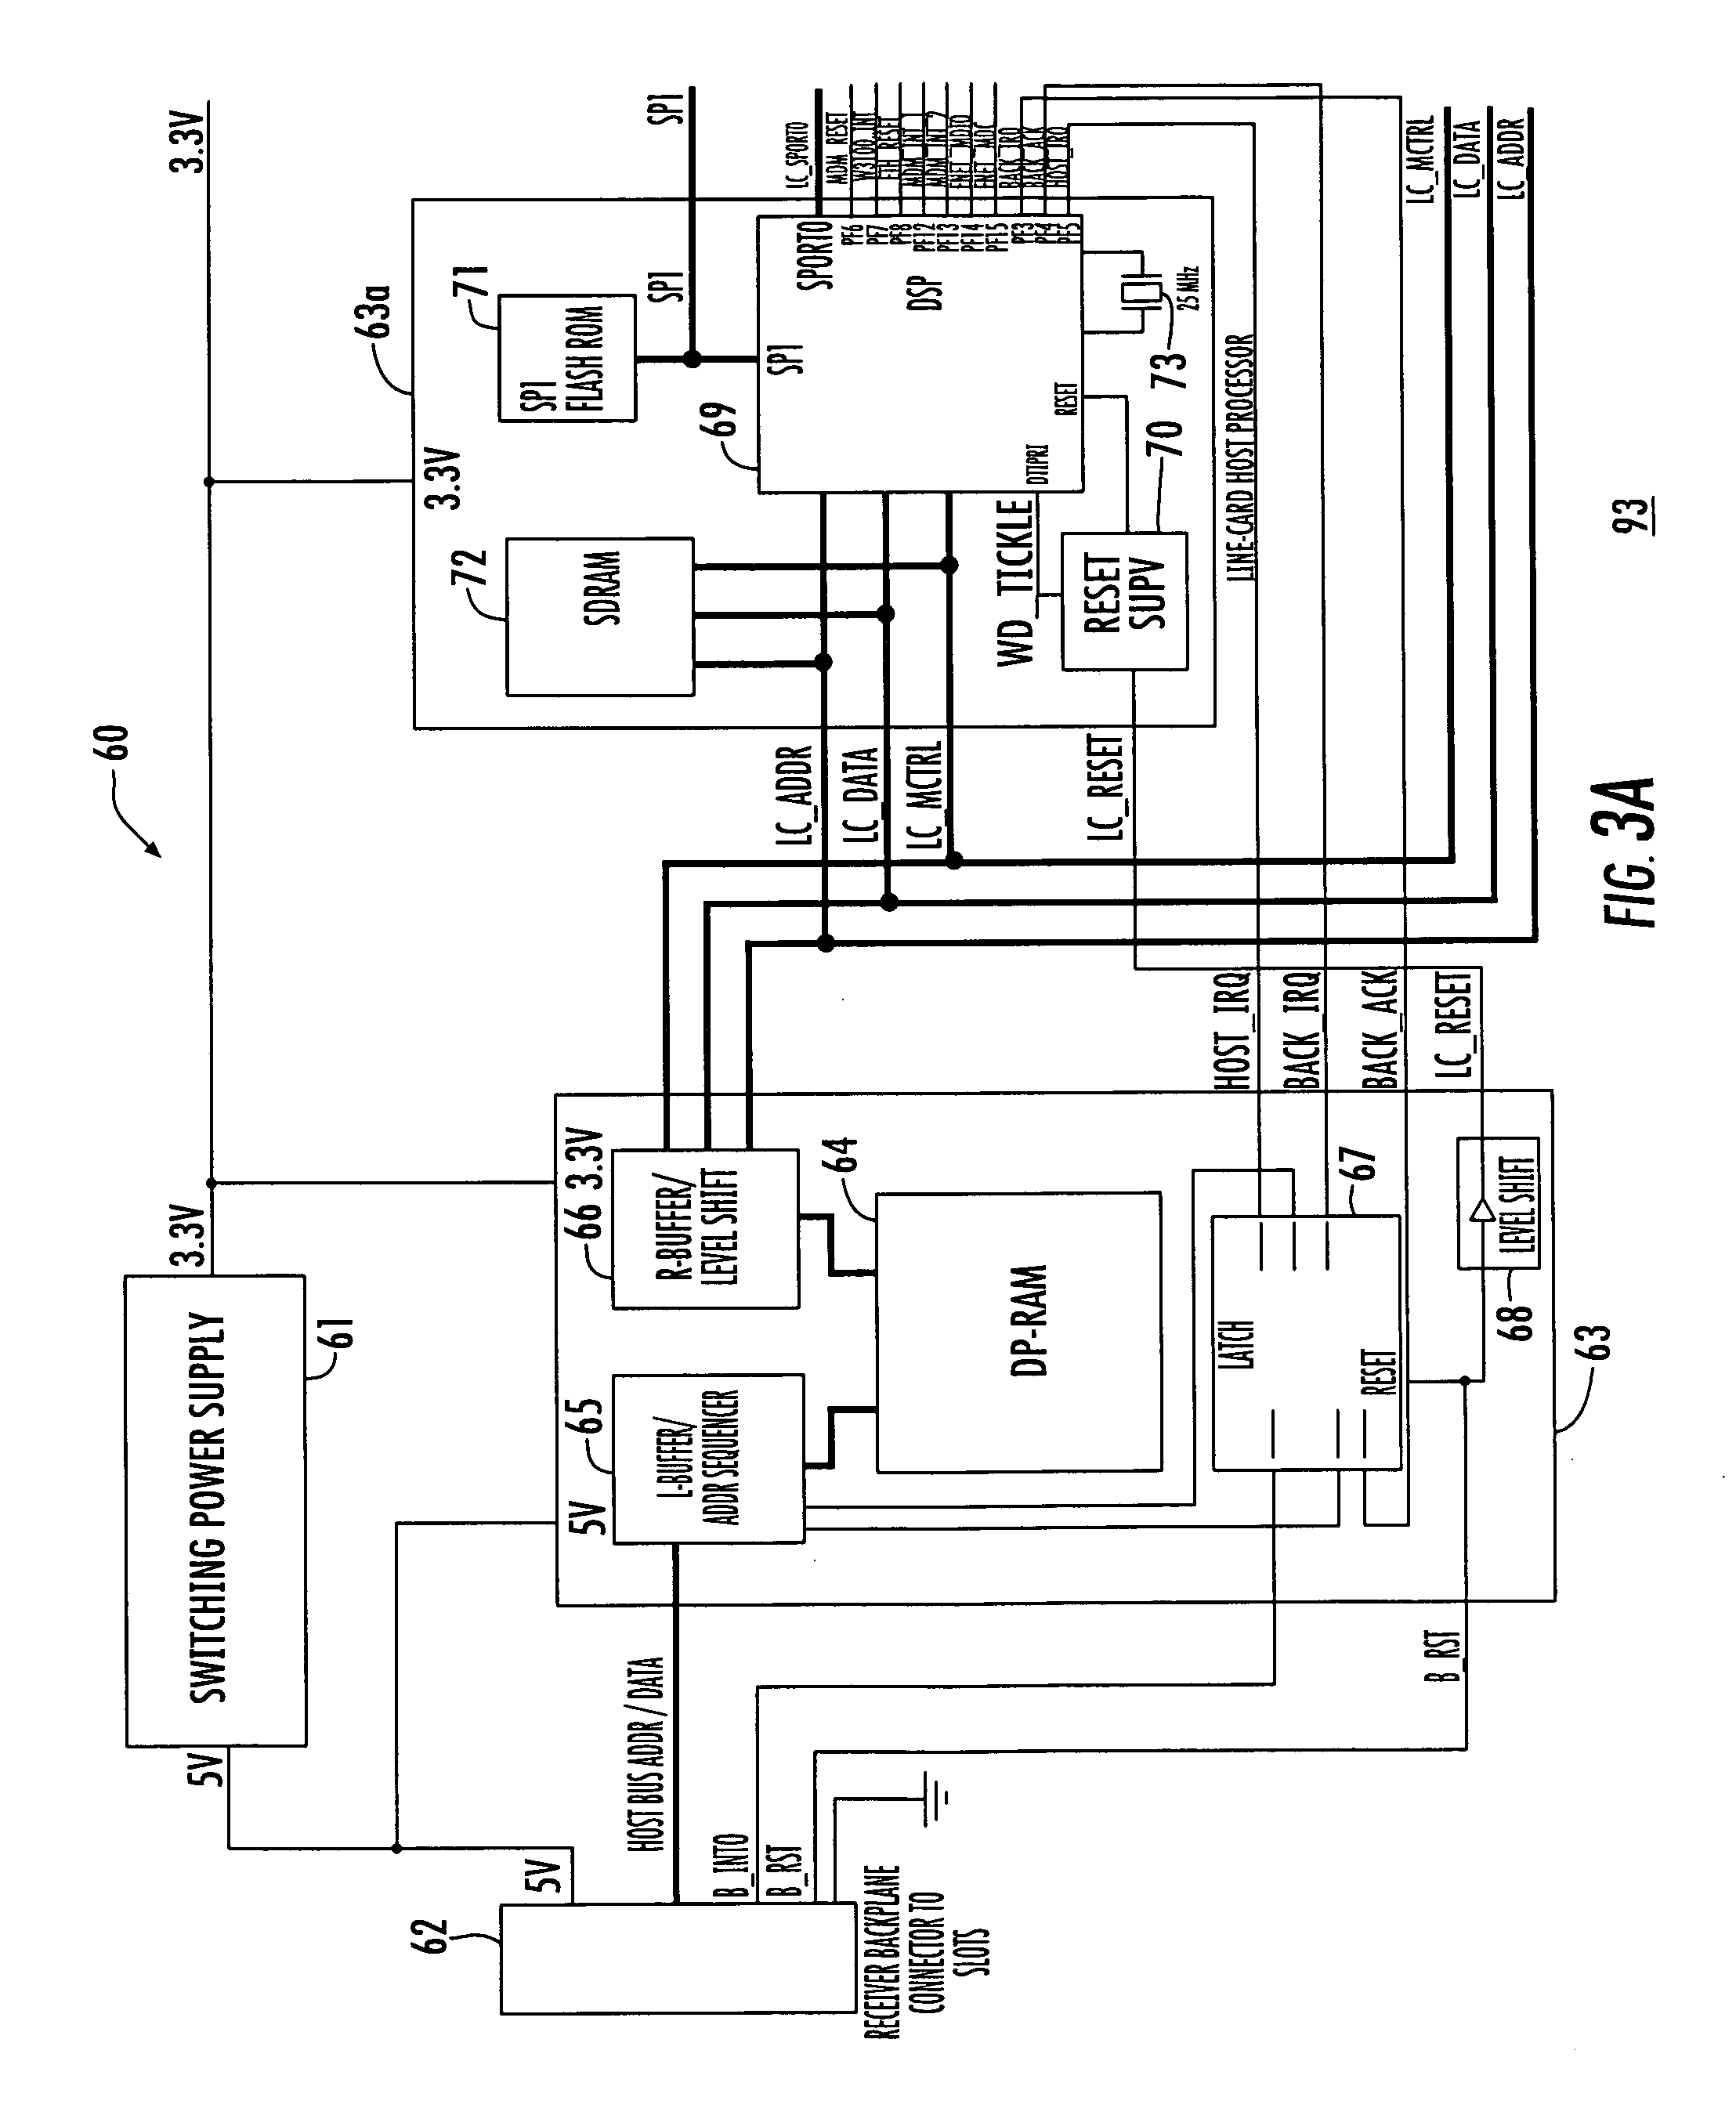 US20090058630A1 20090305 D00004?resize\\\\\\\=665%2C814 goodman sequencer wiring diagram fan carrier heat pump schematic Coleman Furnace Wiring Diagram at gsmx.co